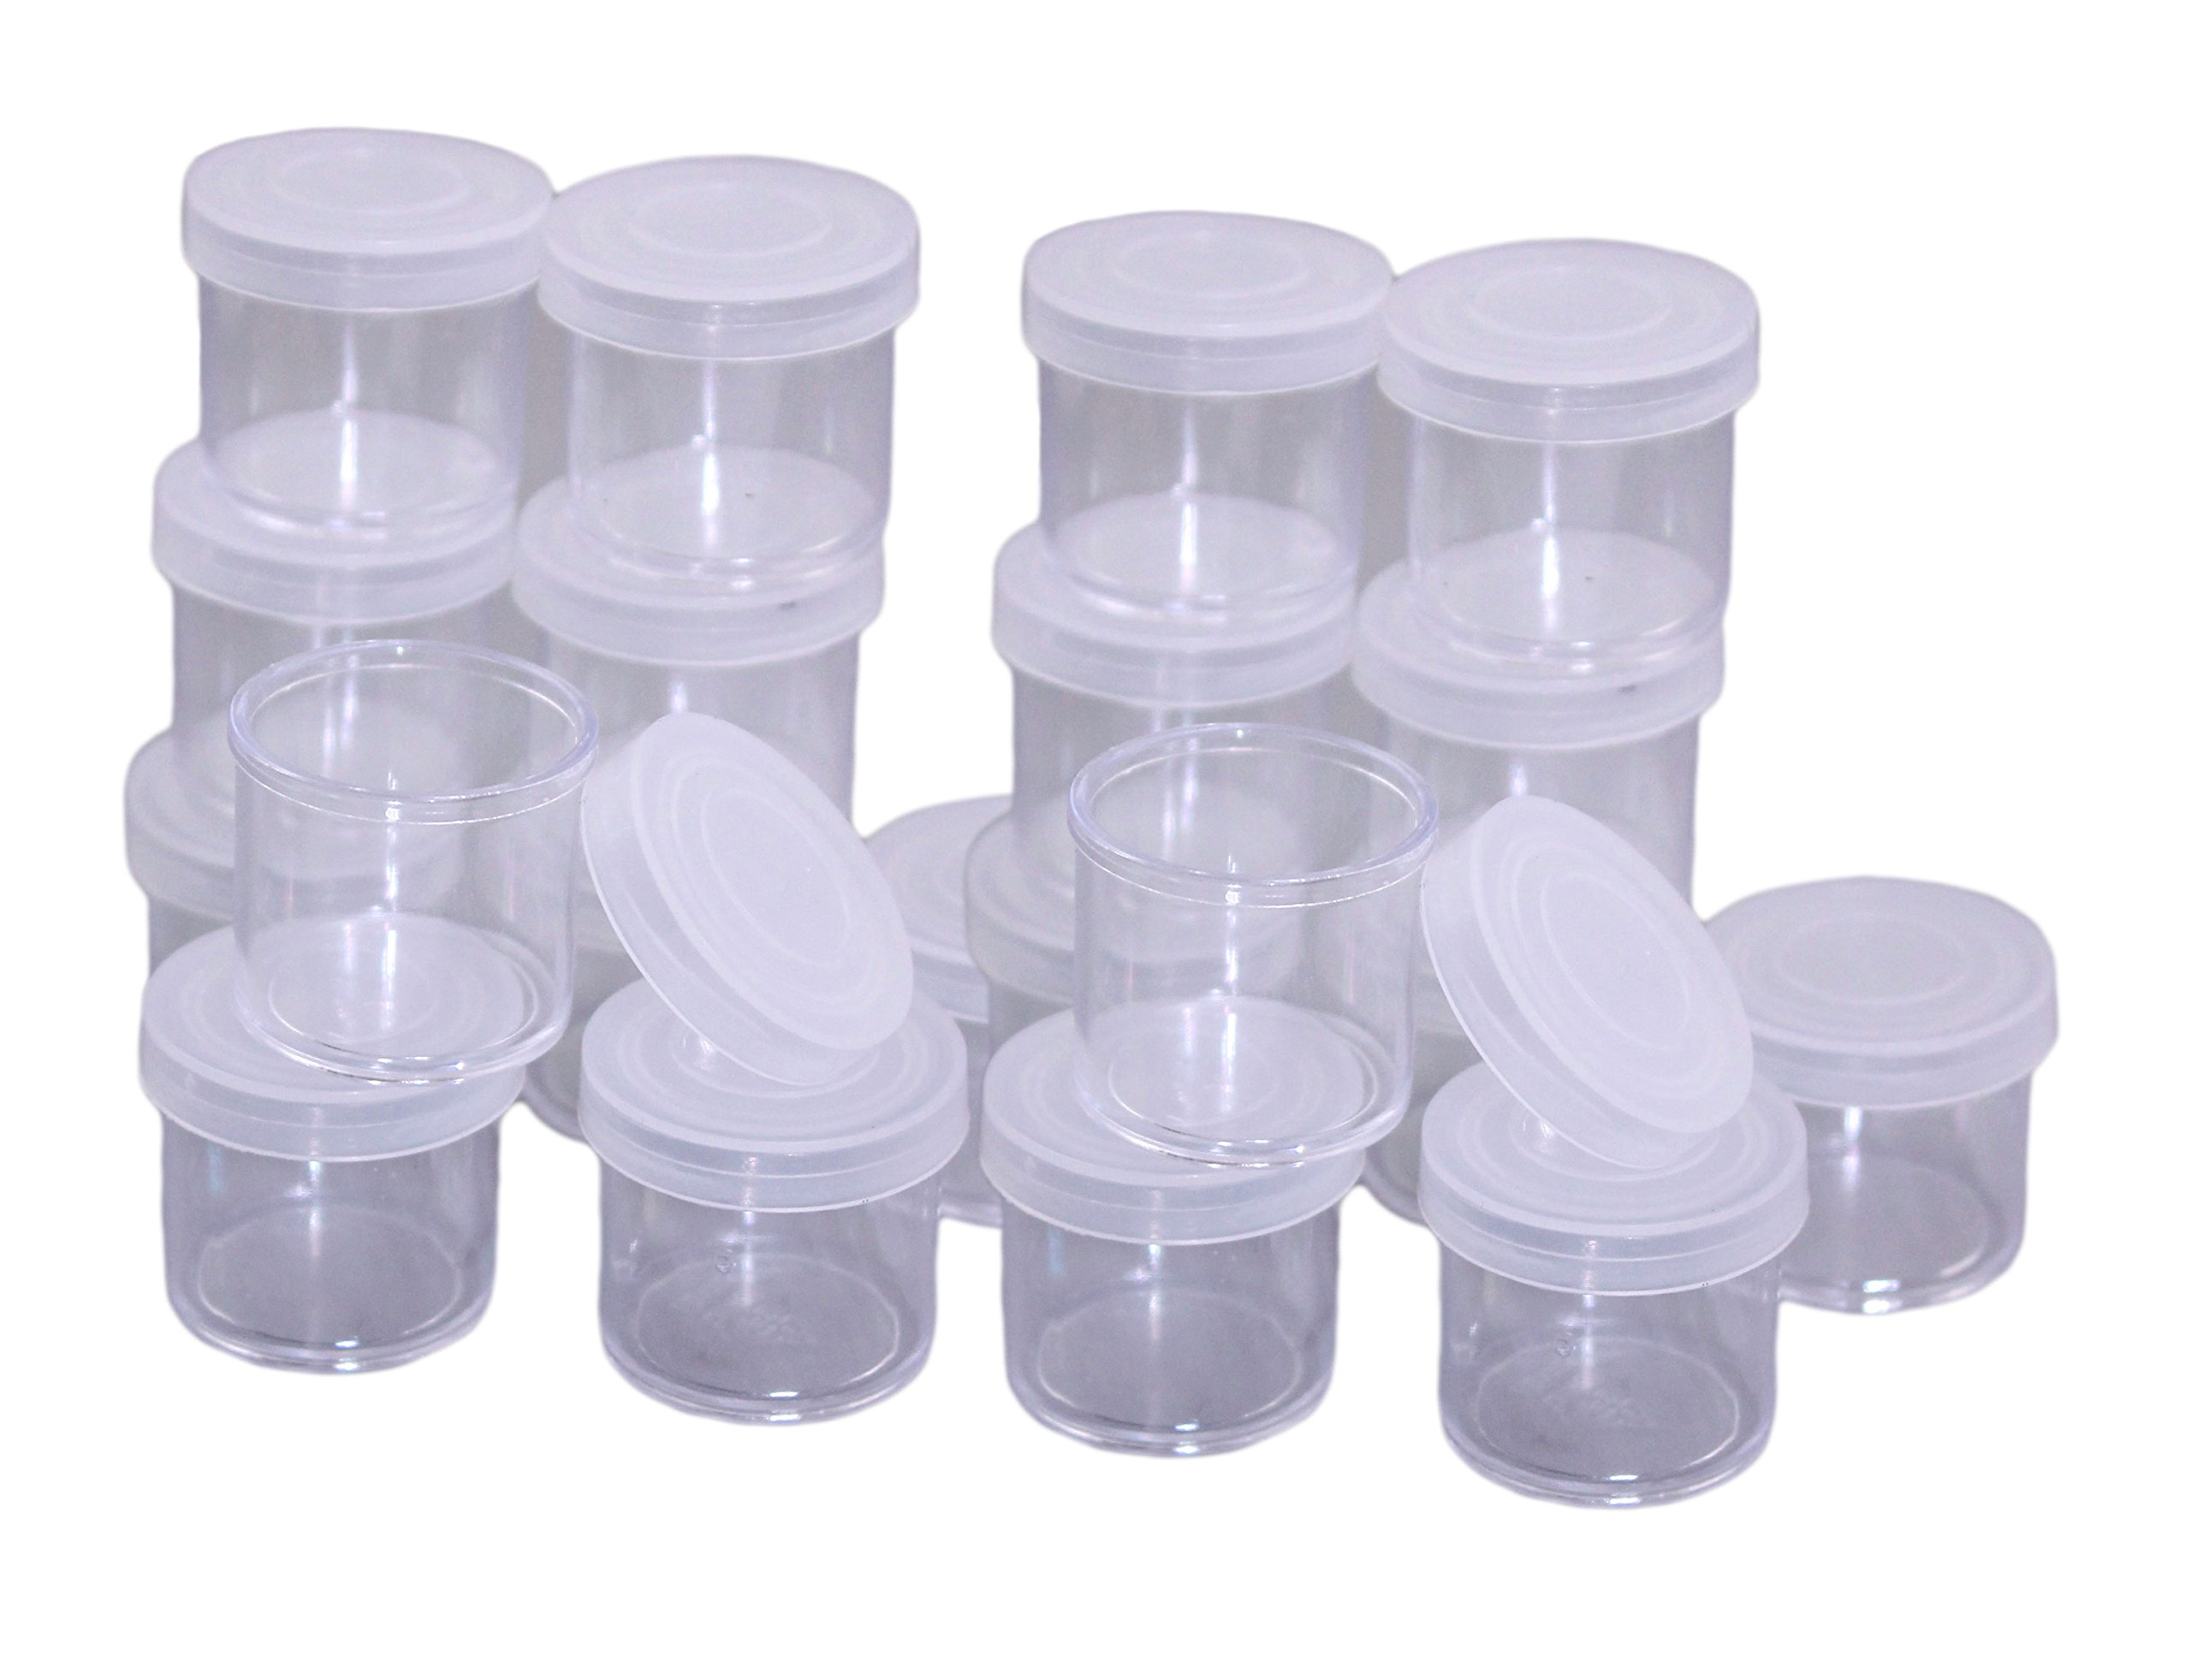 Plastic Containers With Lids Cheap Small Plastic Containers With Lids Find Small